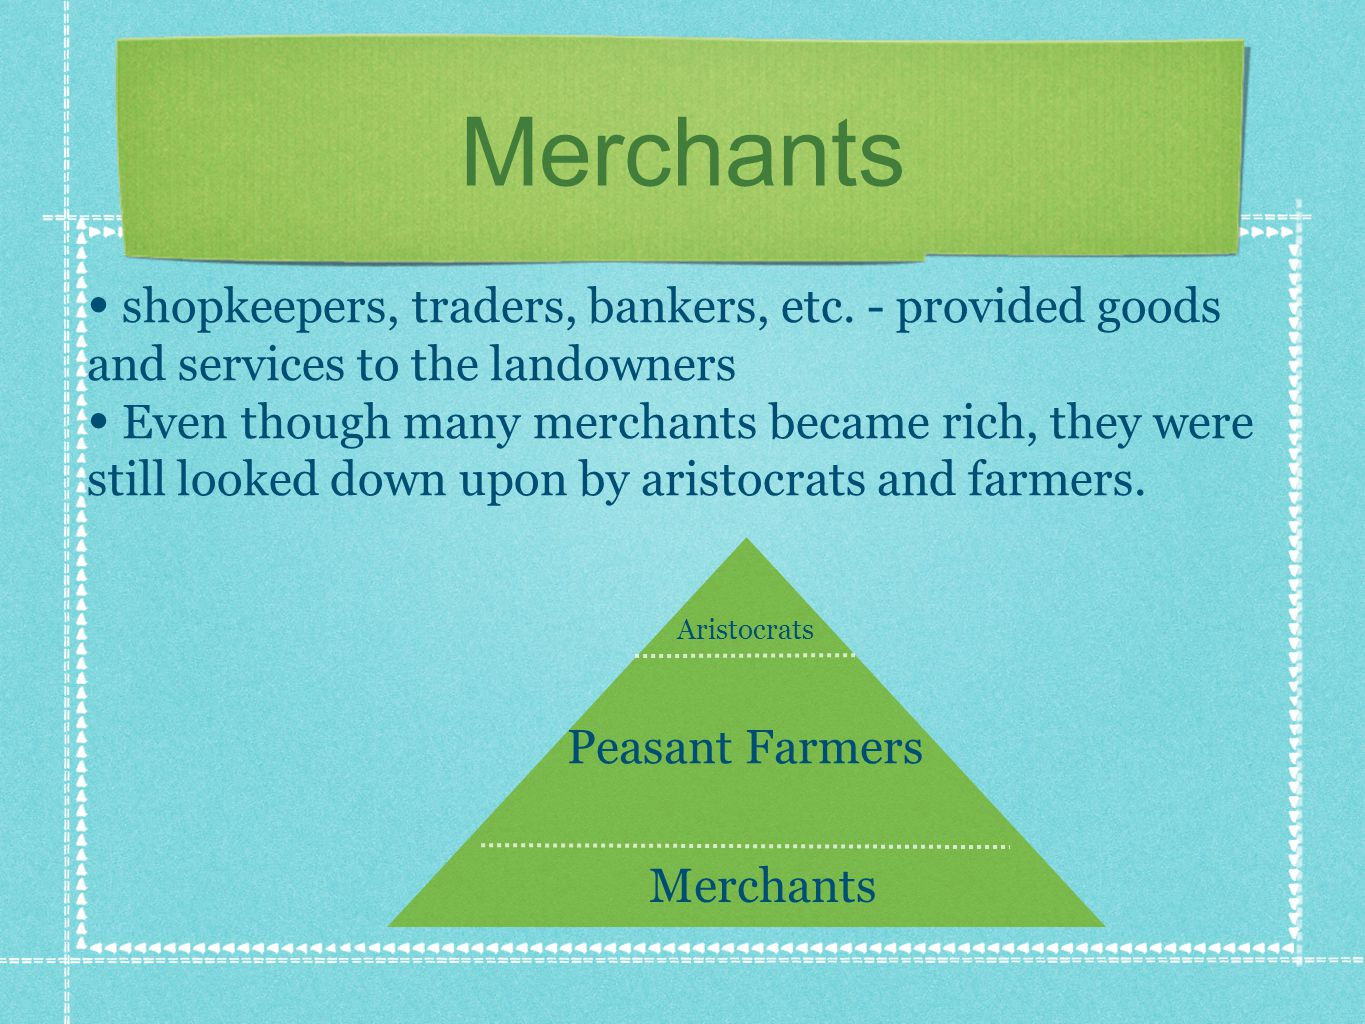 Merchants Peasant Farmers Aristocrats shopkeepers, traders, bankers, etc.